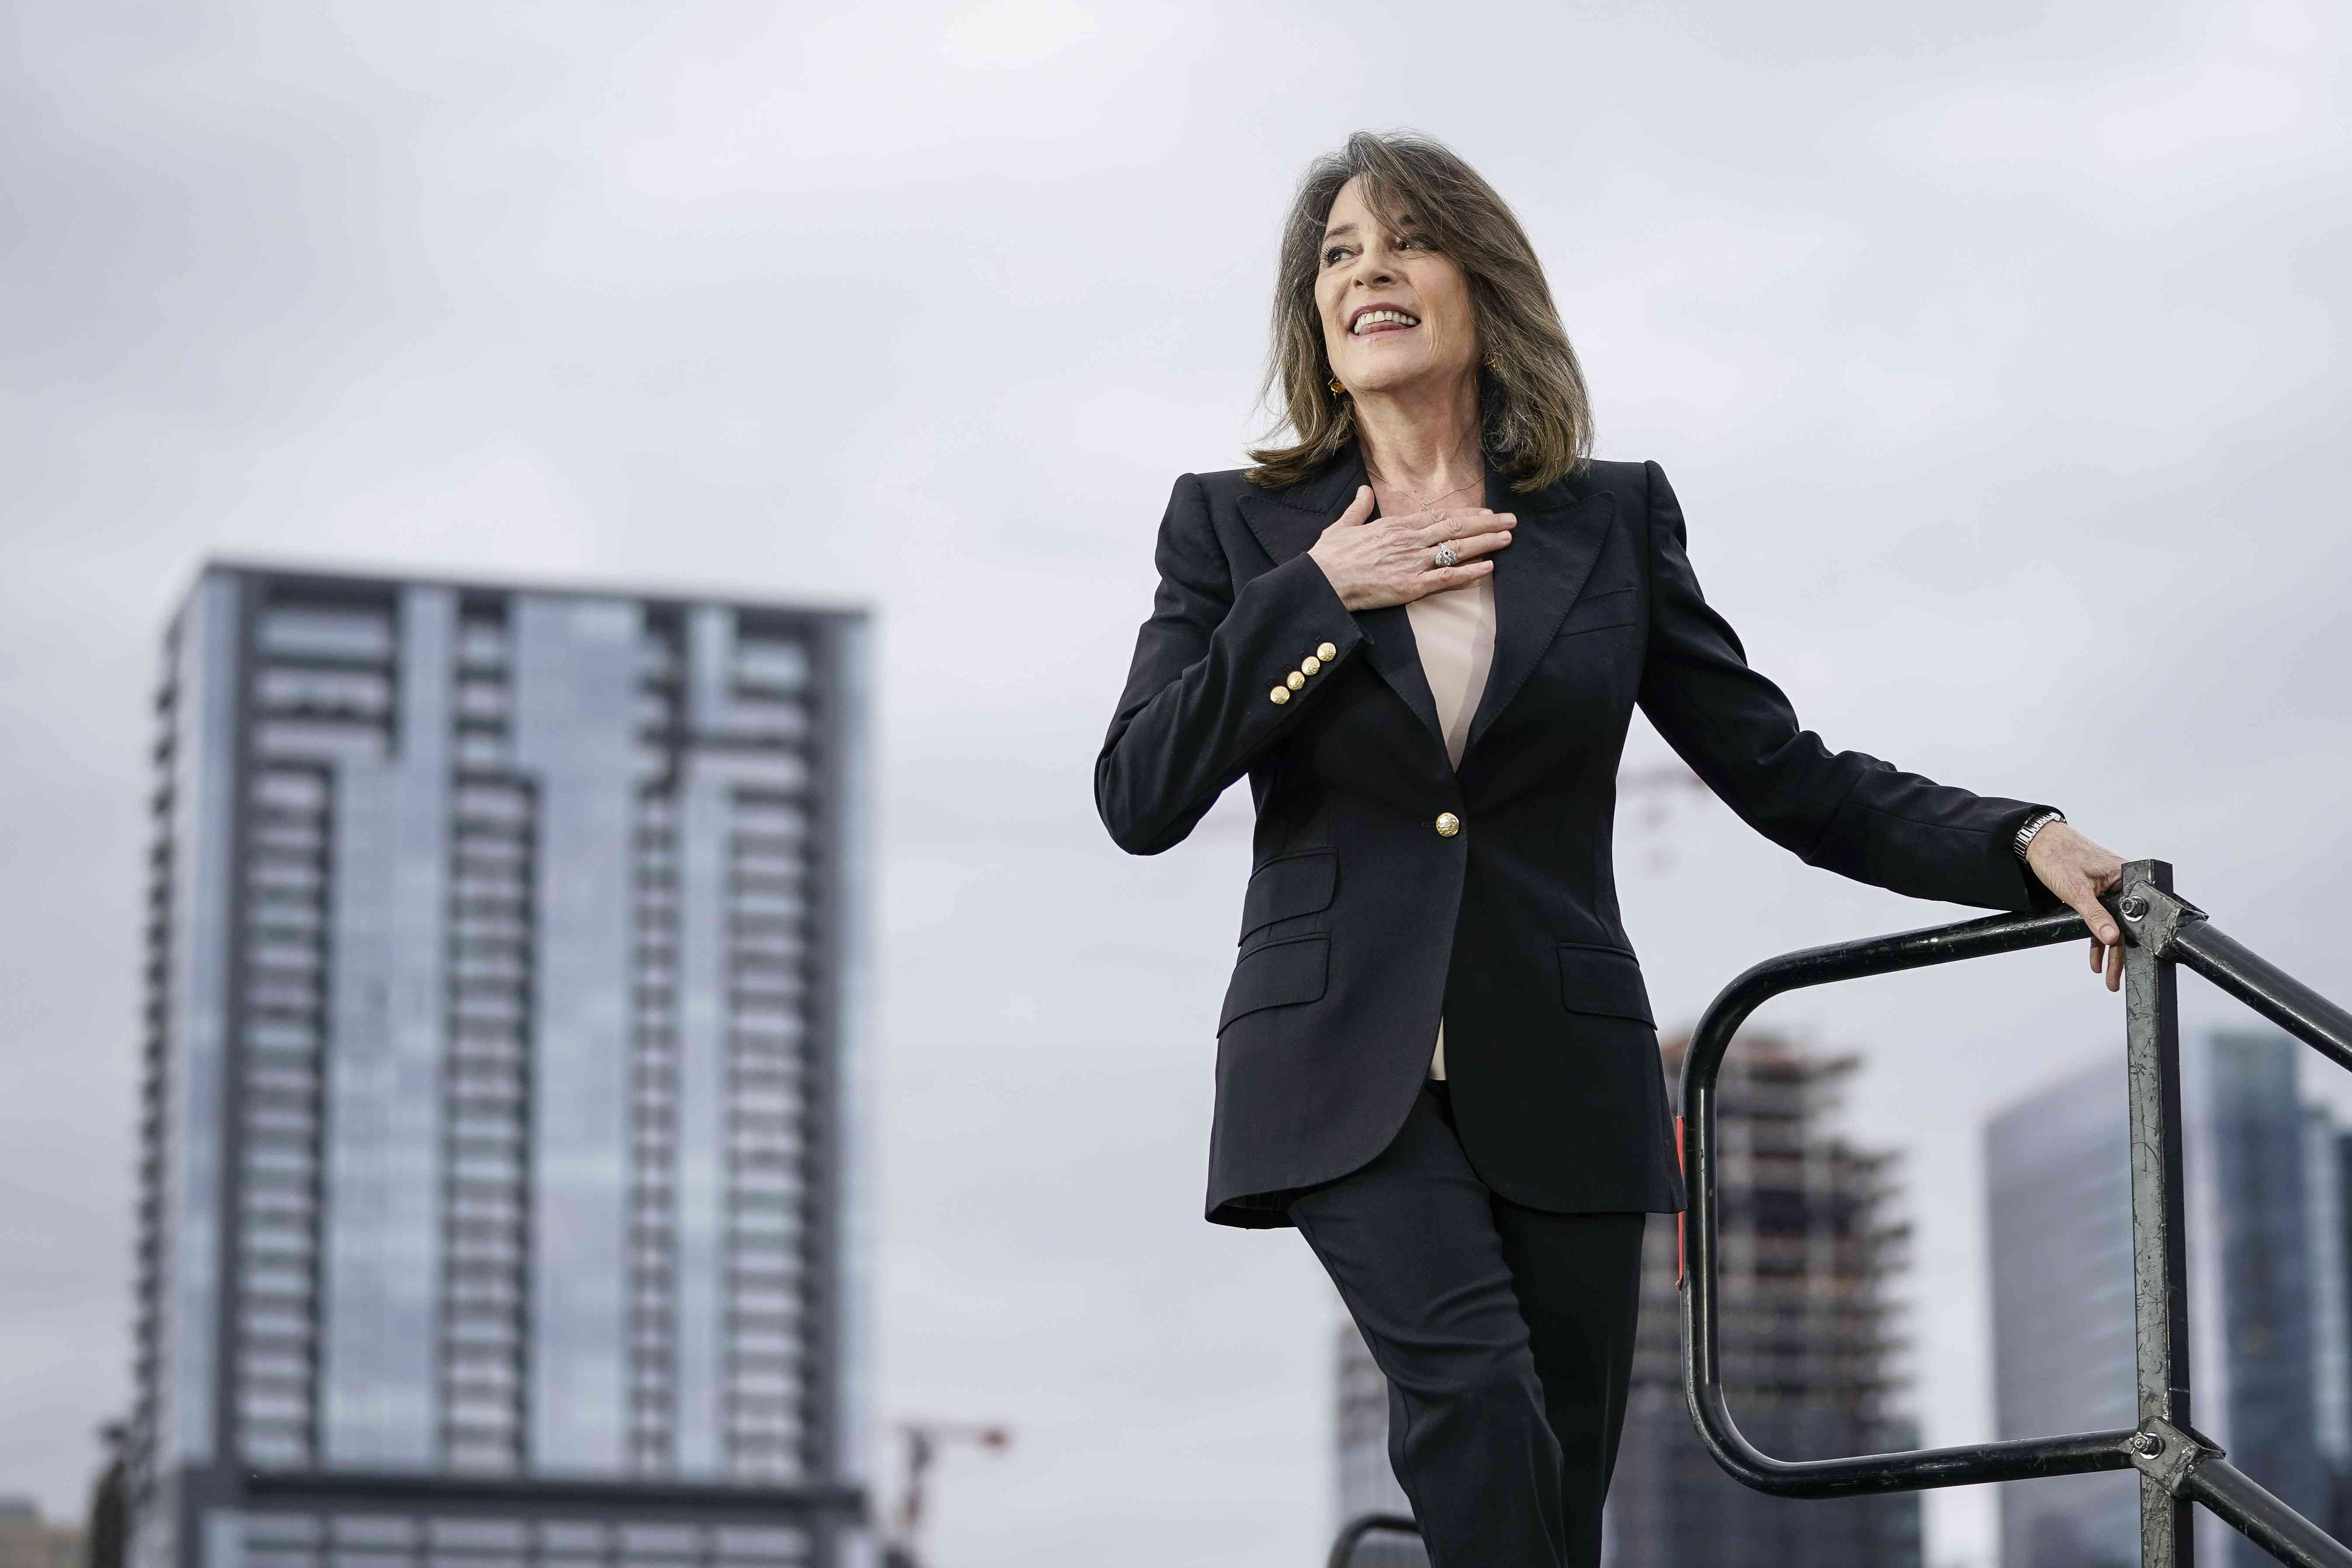 Marianne Williamson smiling with her hand over her chest while descending a staircase